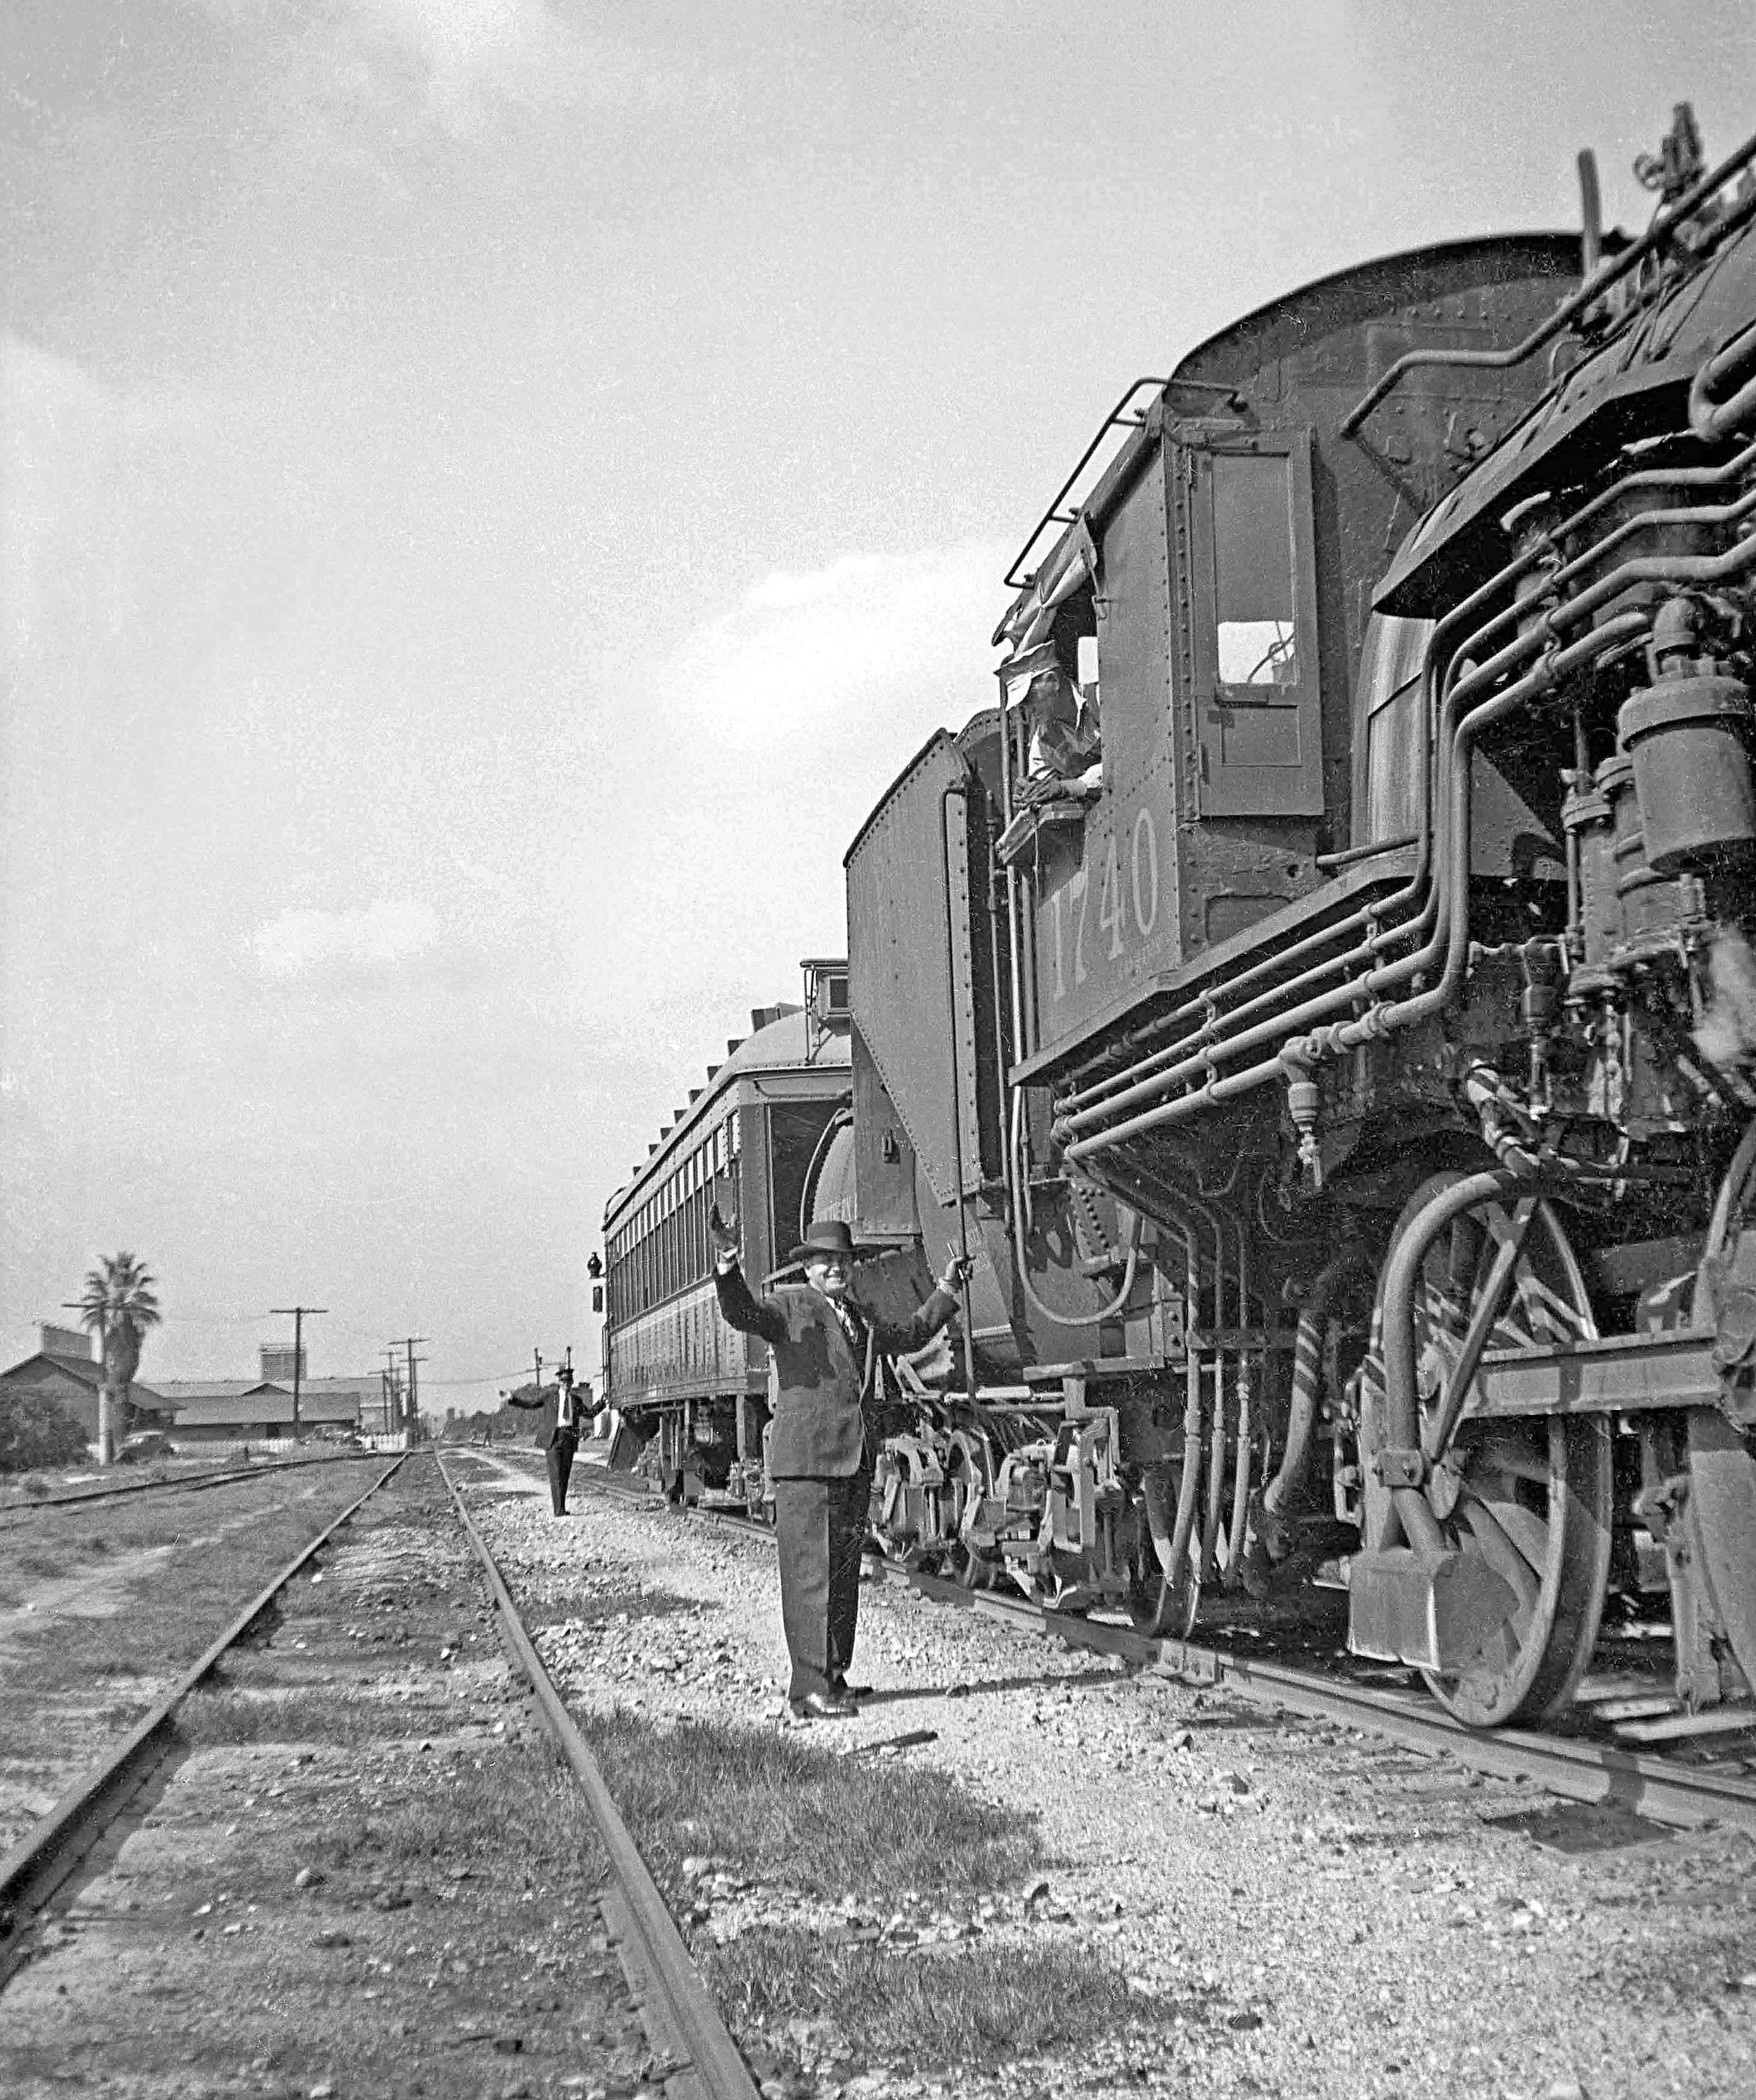 Southern Pacific 1740 Preparing to Depart SP Covina Depot